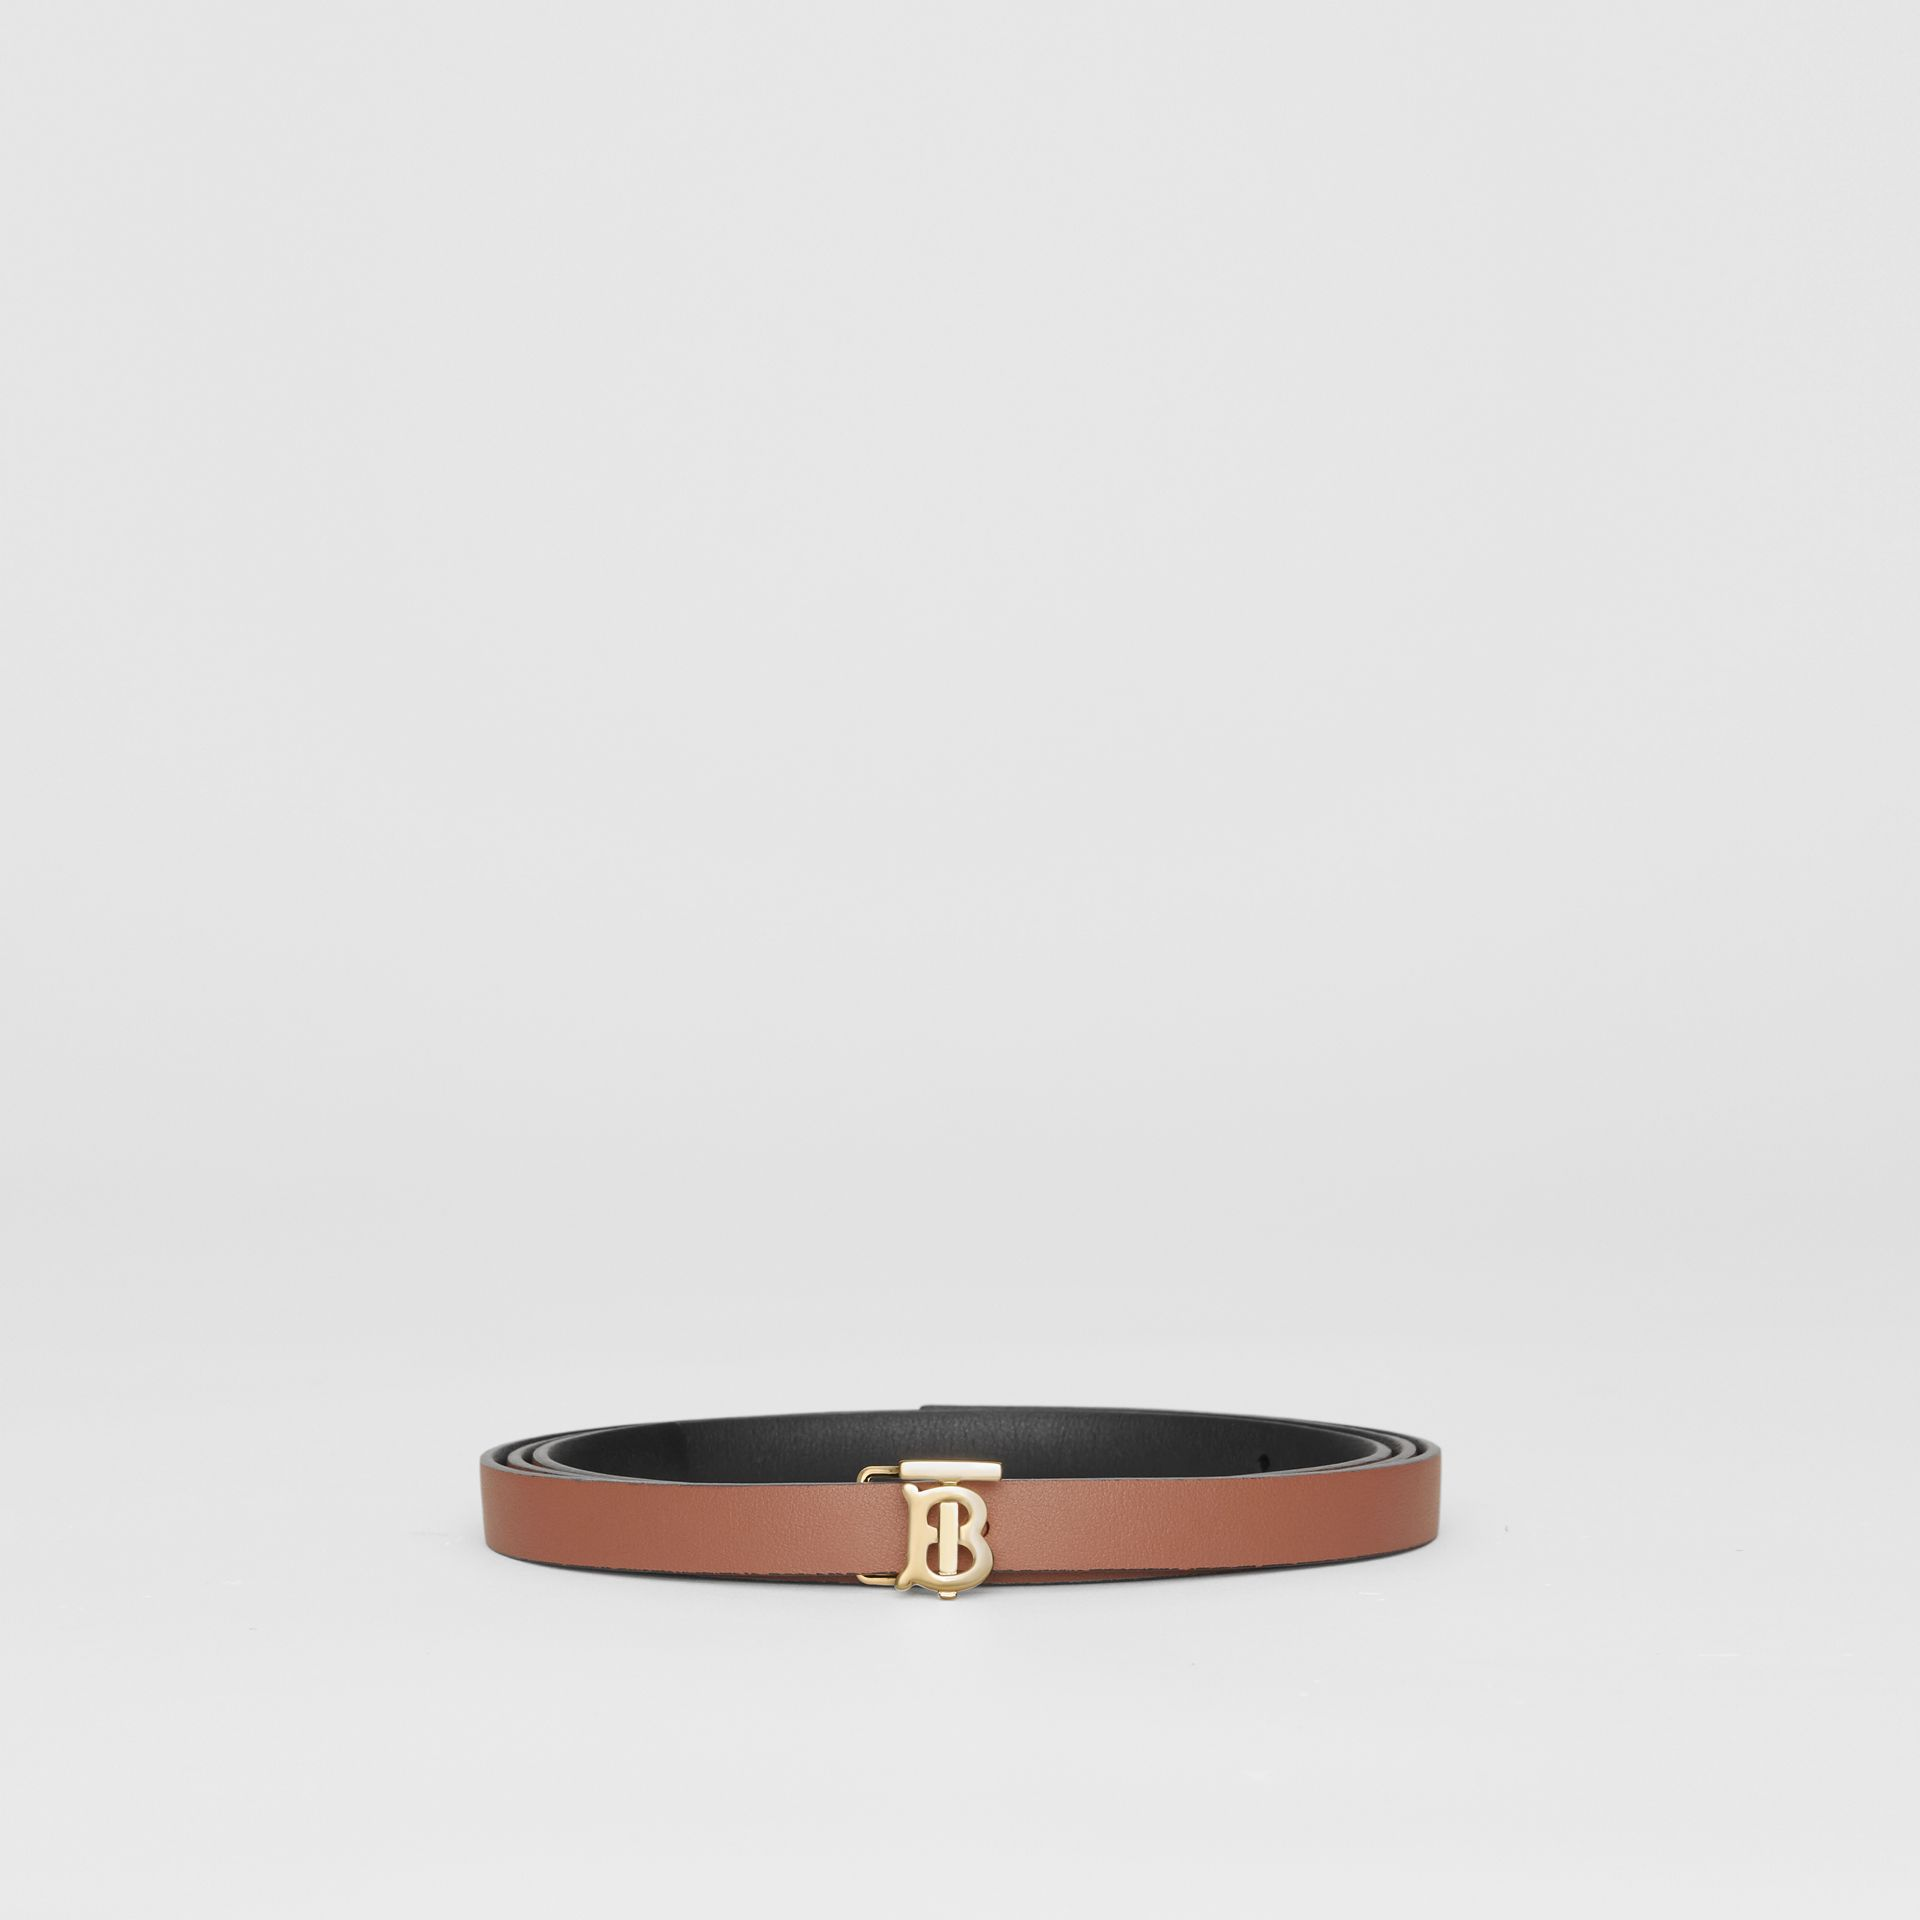 Reversible Monogram Motif Leather Wrap Belt in Black/malt Brown - Women | Burberry Hong Kong - gallery image 6